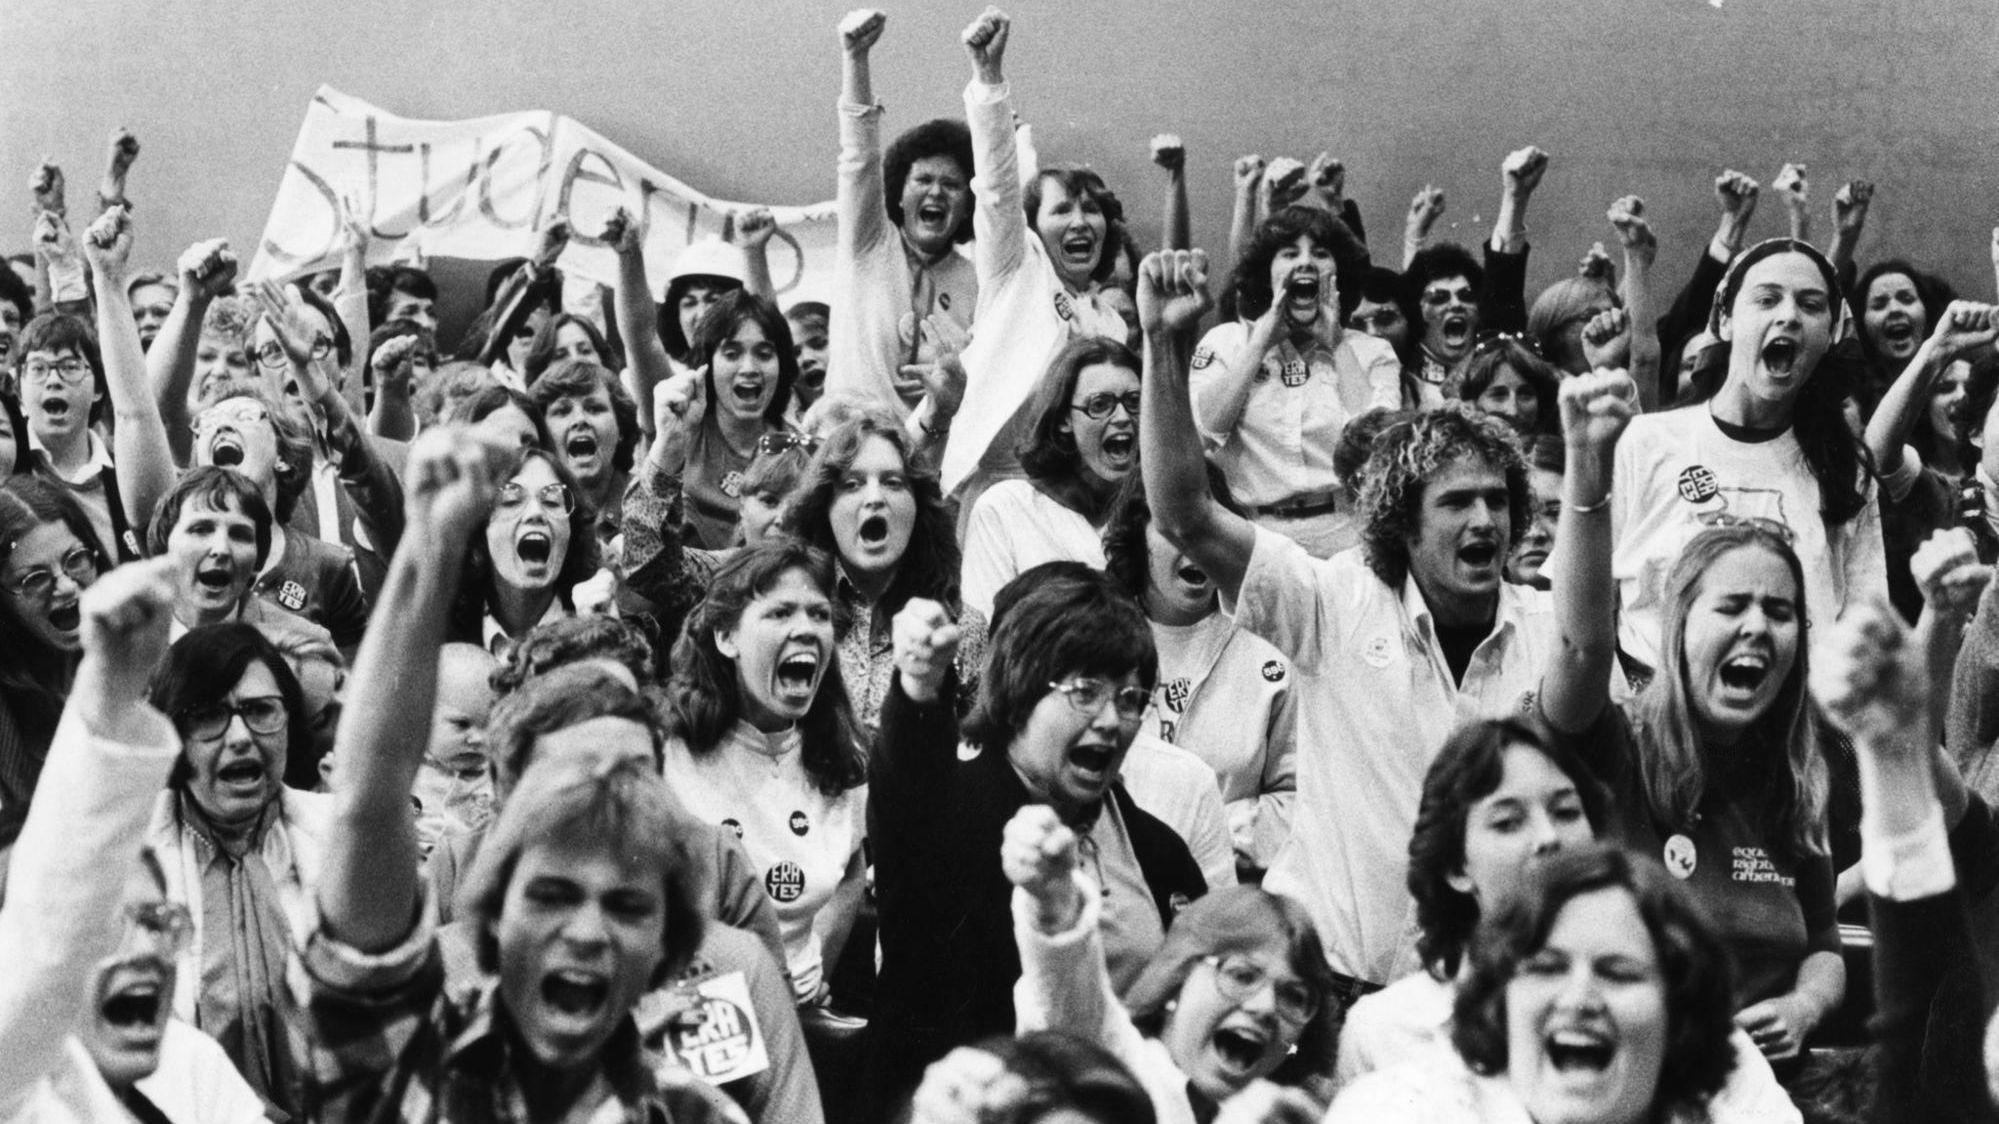 equal rights amendment approval comes 36 years after raucous capitol